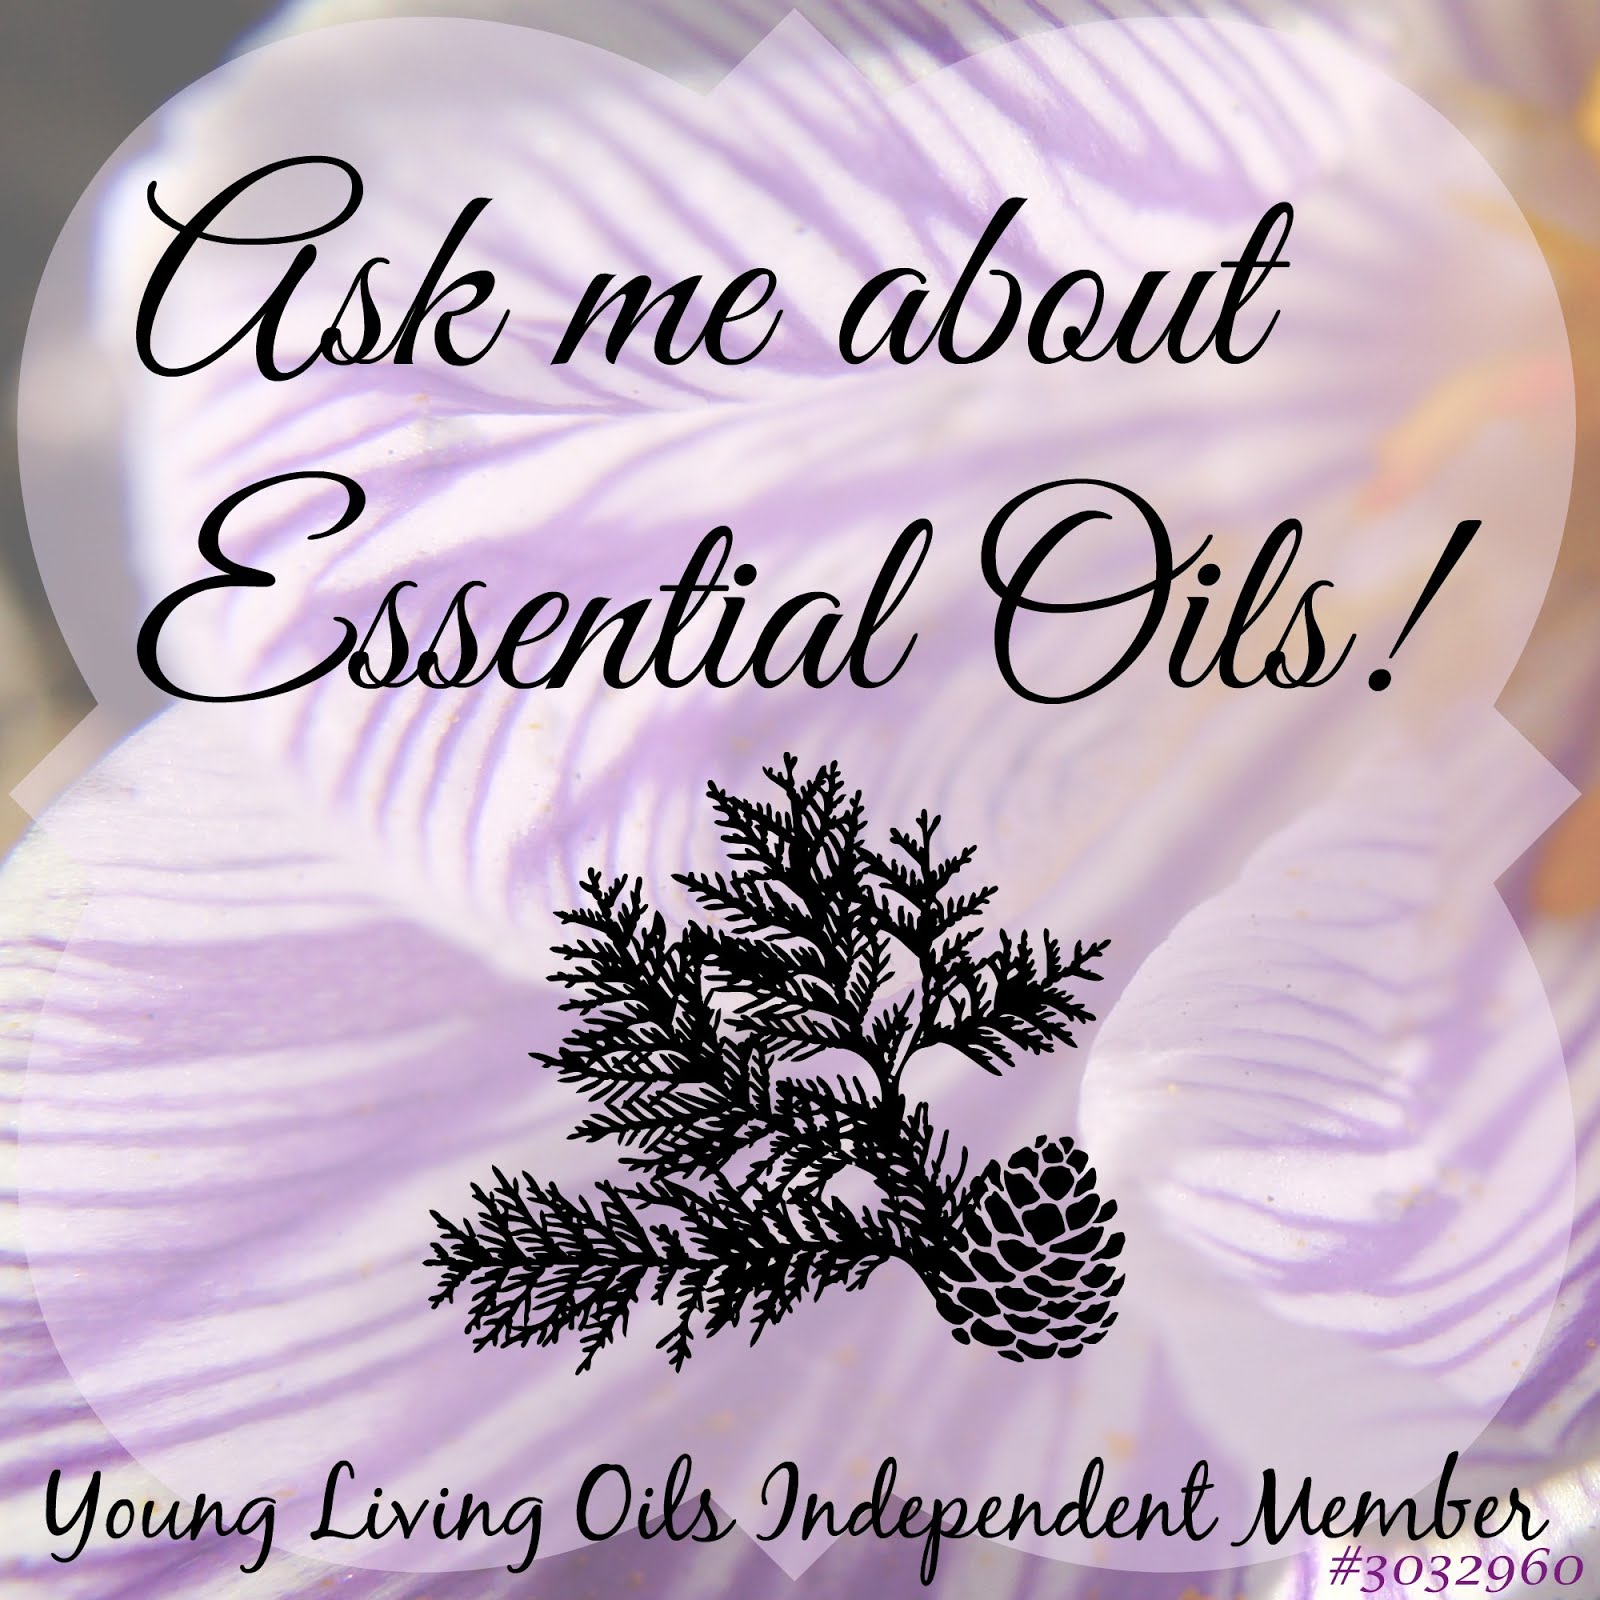 Young Living Pretty Oil Team Member 3032960